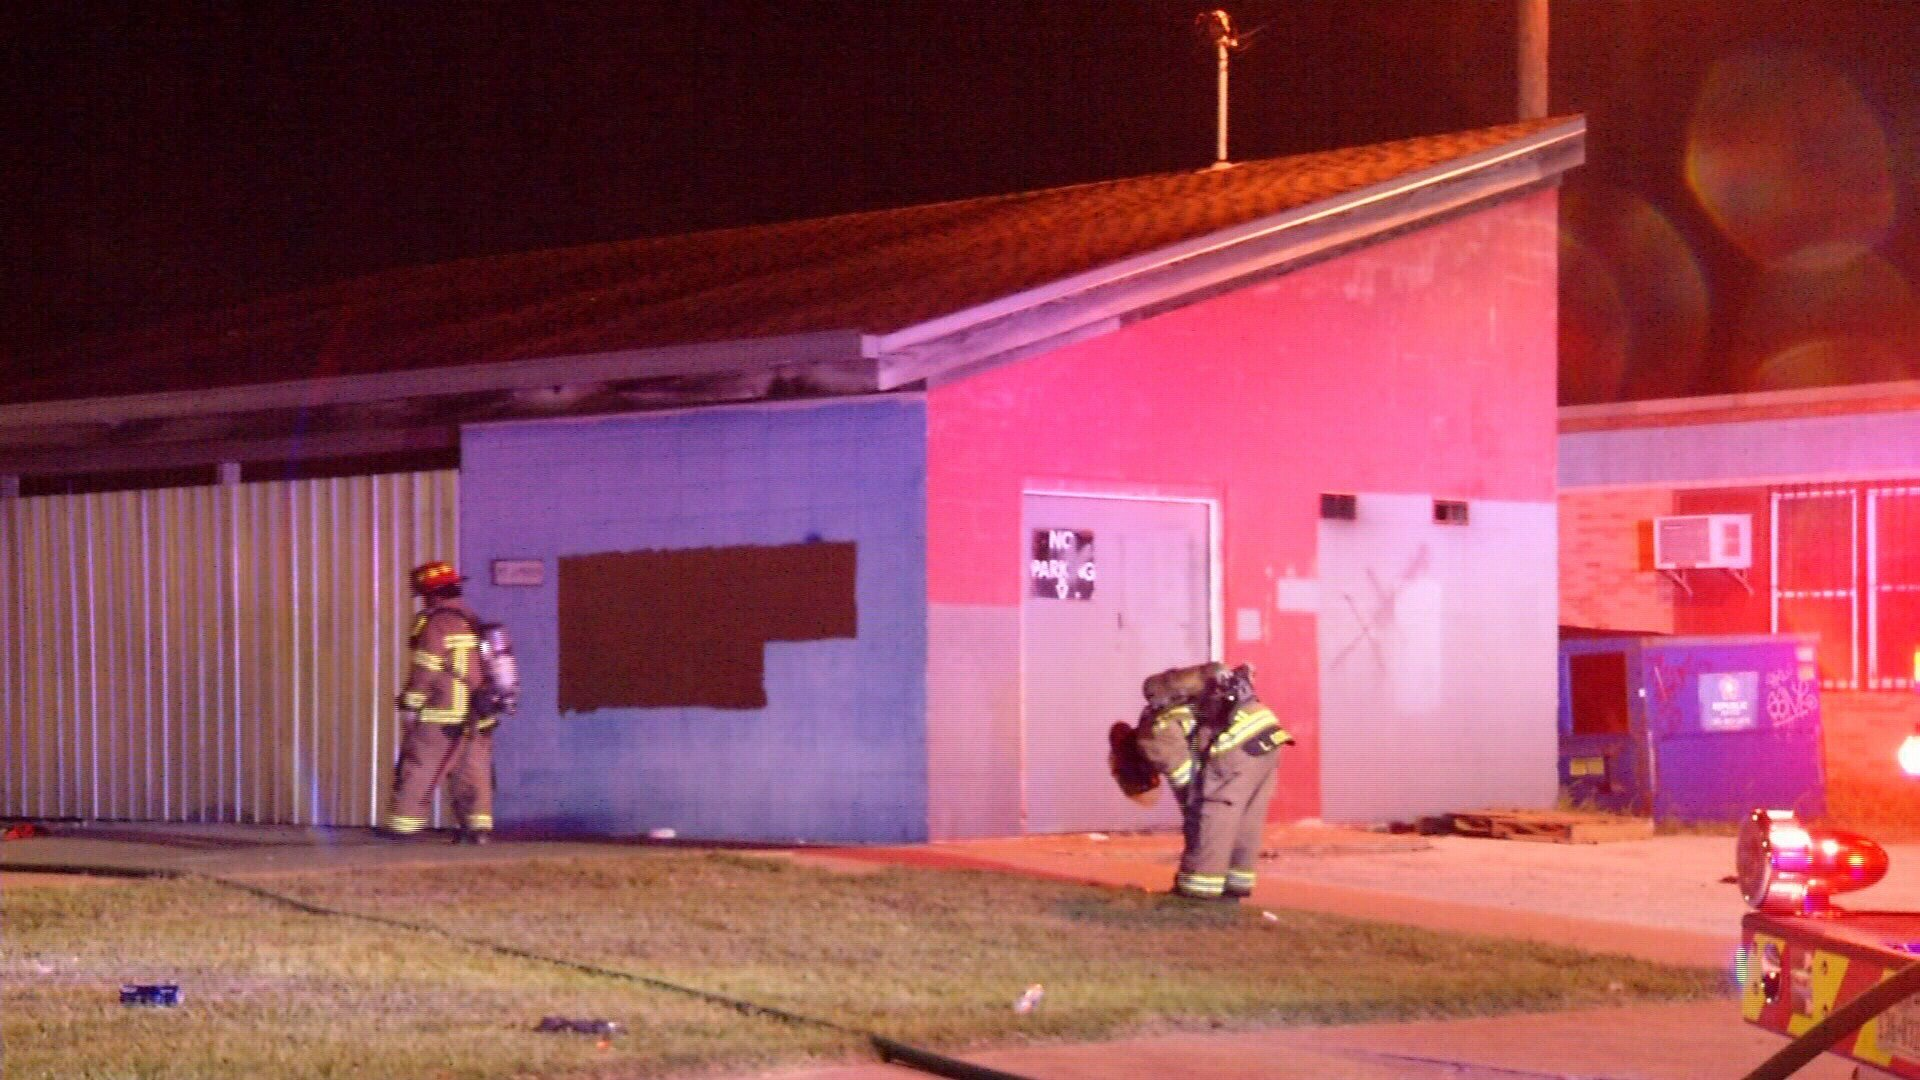 A second fire in an abandoned building leads investigators to believe the same person may have set both fires.